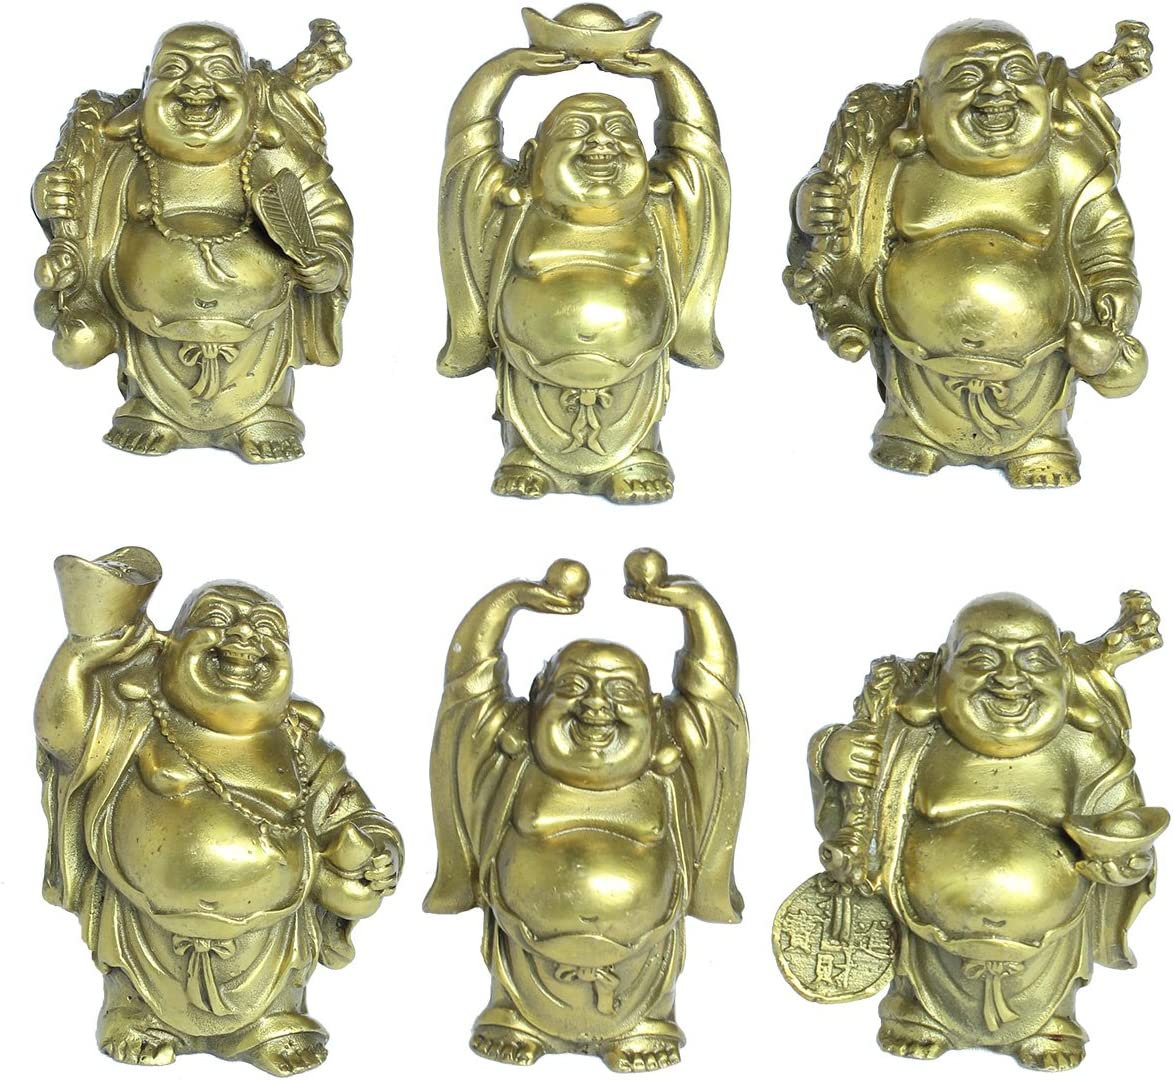 Christmas Characteristic Gift Decoration Laughing Buddha Figurines Lucky Happy Buddha Statue-Set of 6 3.5 Brass